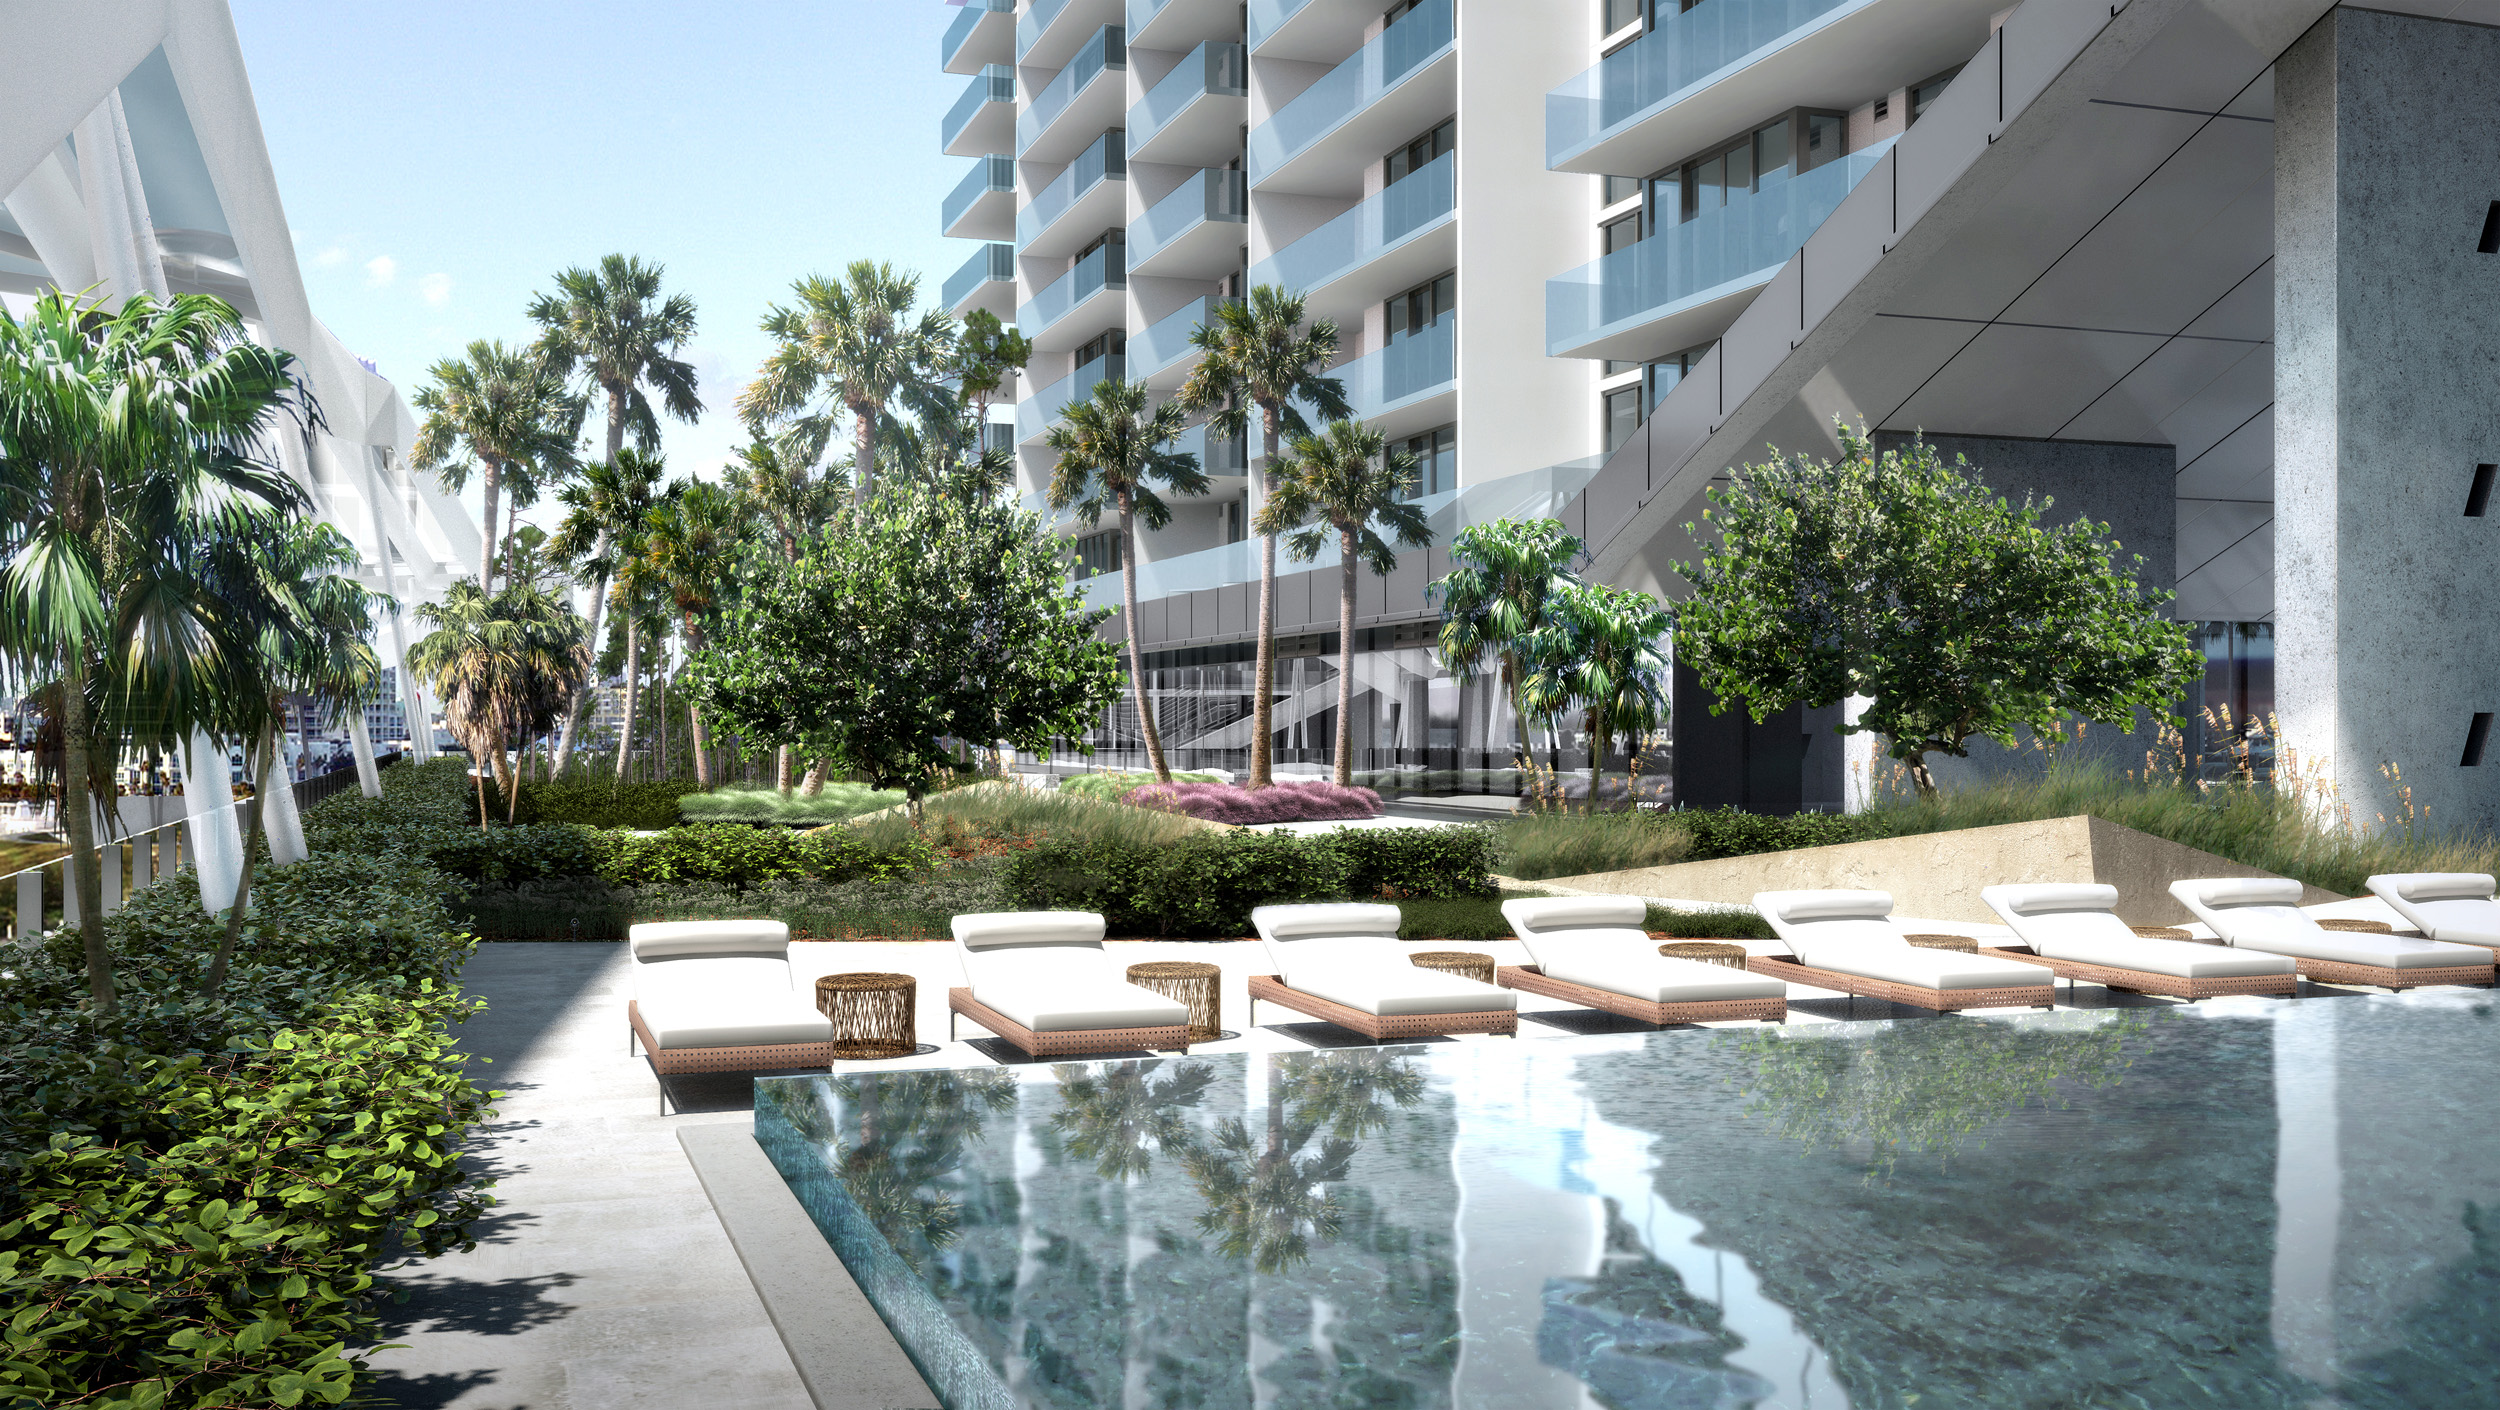 Condominium for Sale at 68 Se 6 St. #1007 68 Se 6 St. 1007 Miami, Florida, 33131 United States